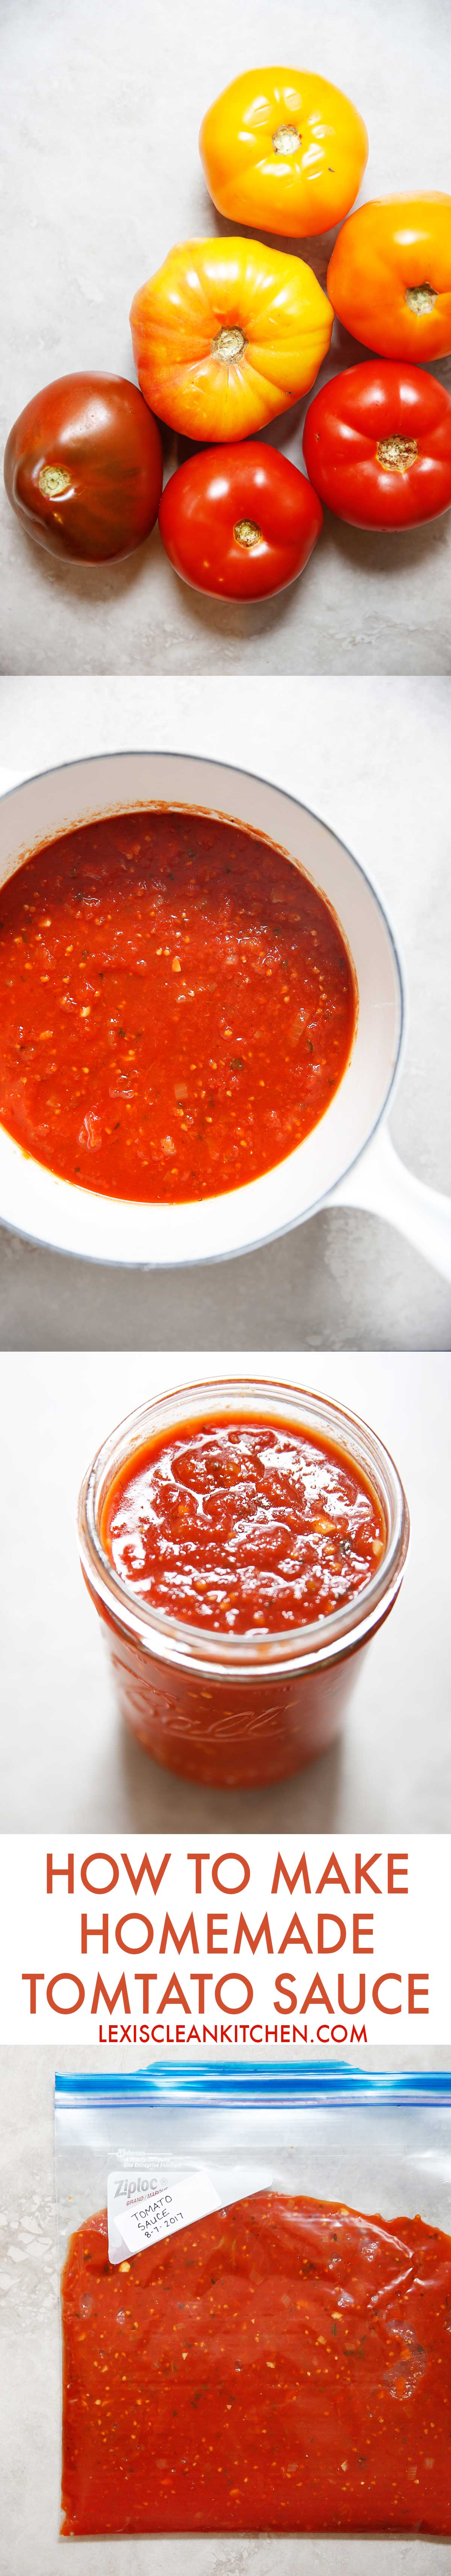 How To Make Tomato Sauce [low-carb, whole30 compliant, grain-free, paleo-friendly, no added sugar]   Lexi's Clean Kitchen